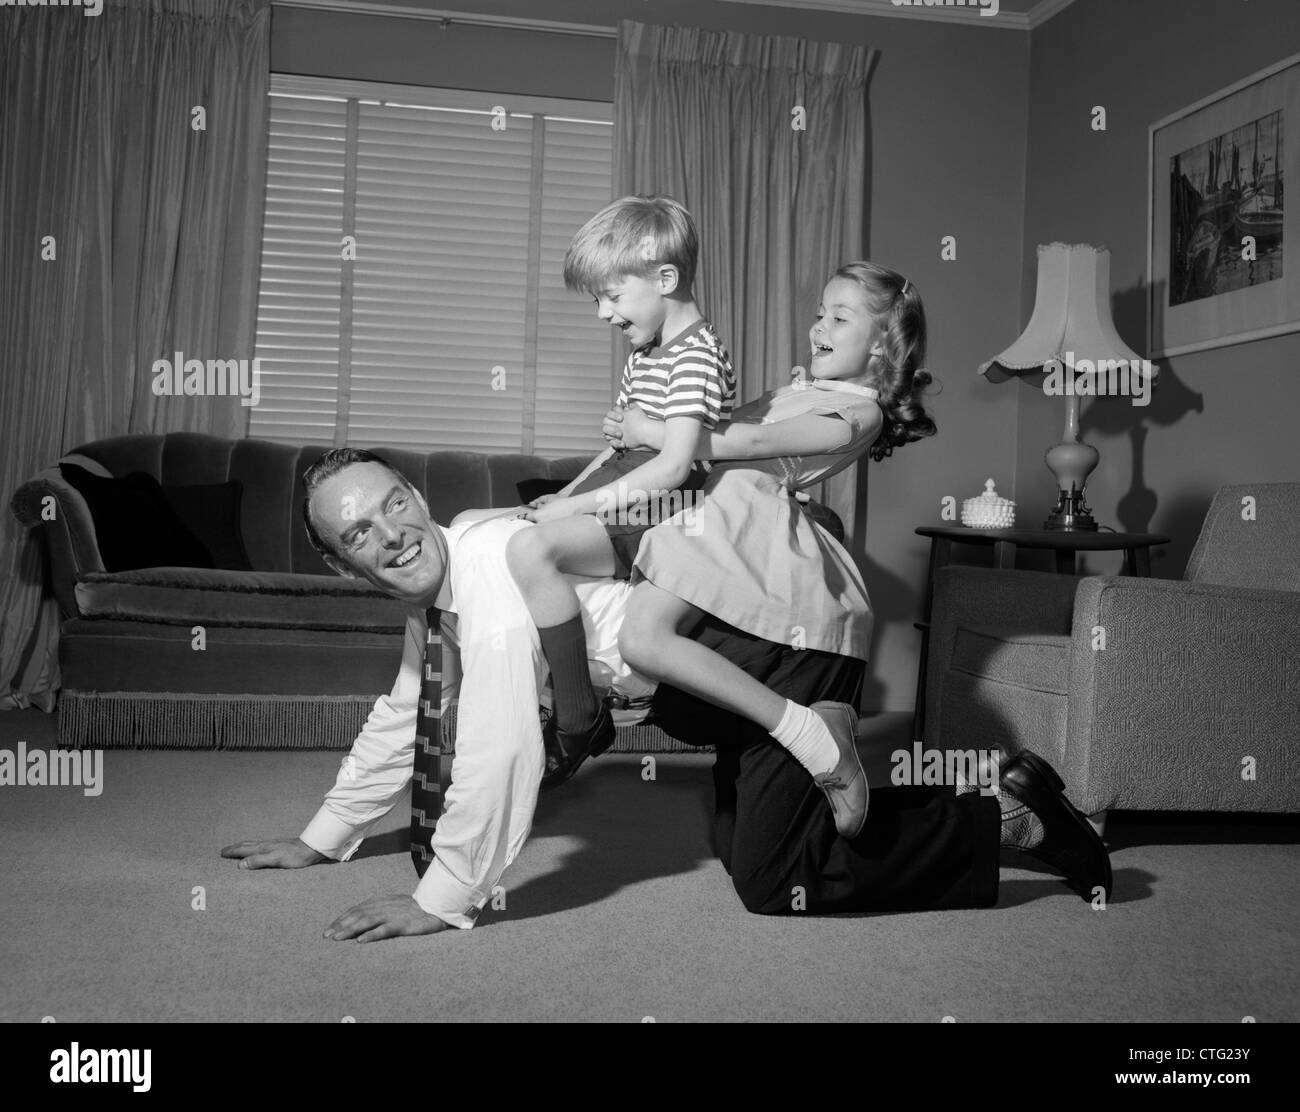 Années 1950 Années 1960 PÈRE EXERÇANT SON BOY & GIRL PIGGYBACK SUR PLANCHER DU SALON Photo Stock